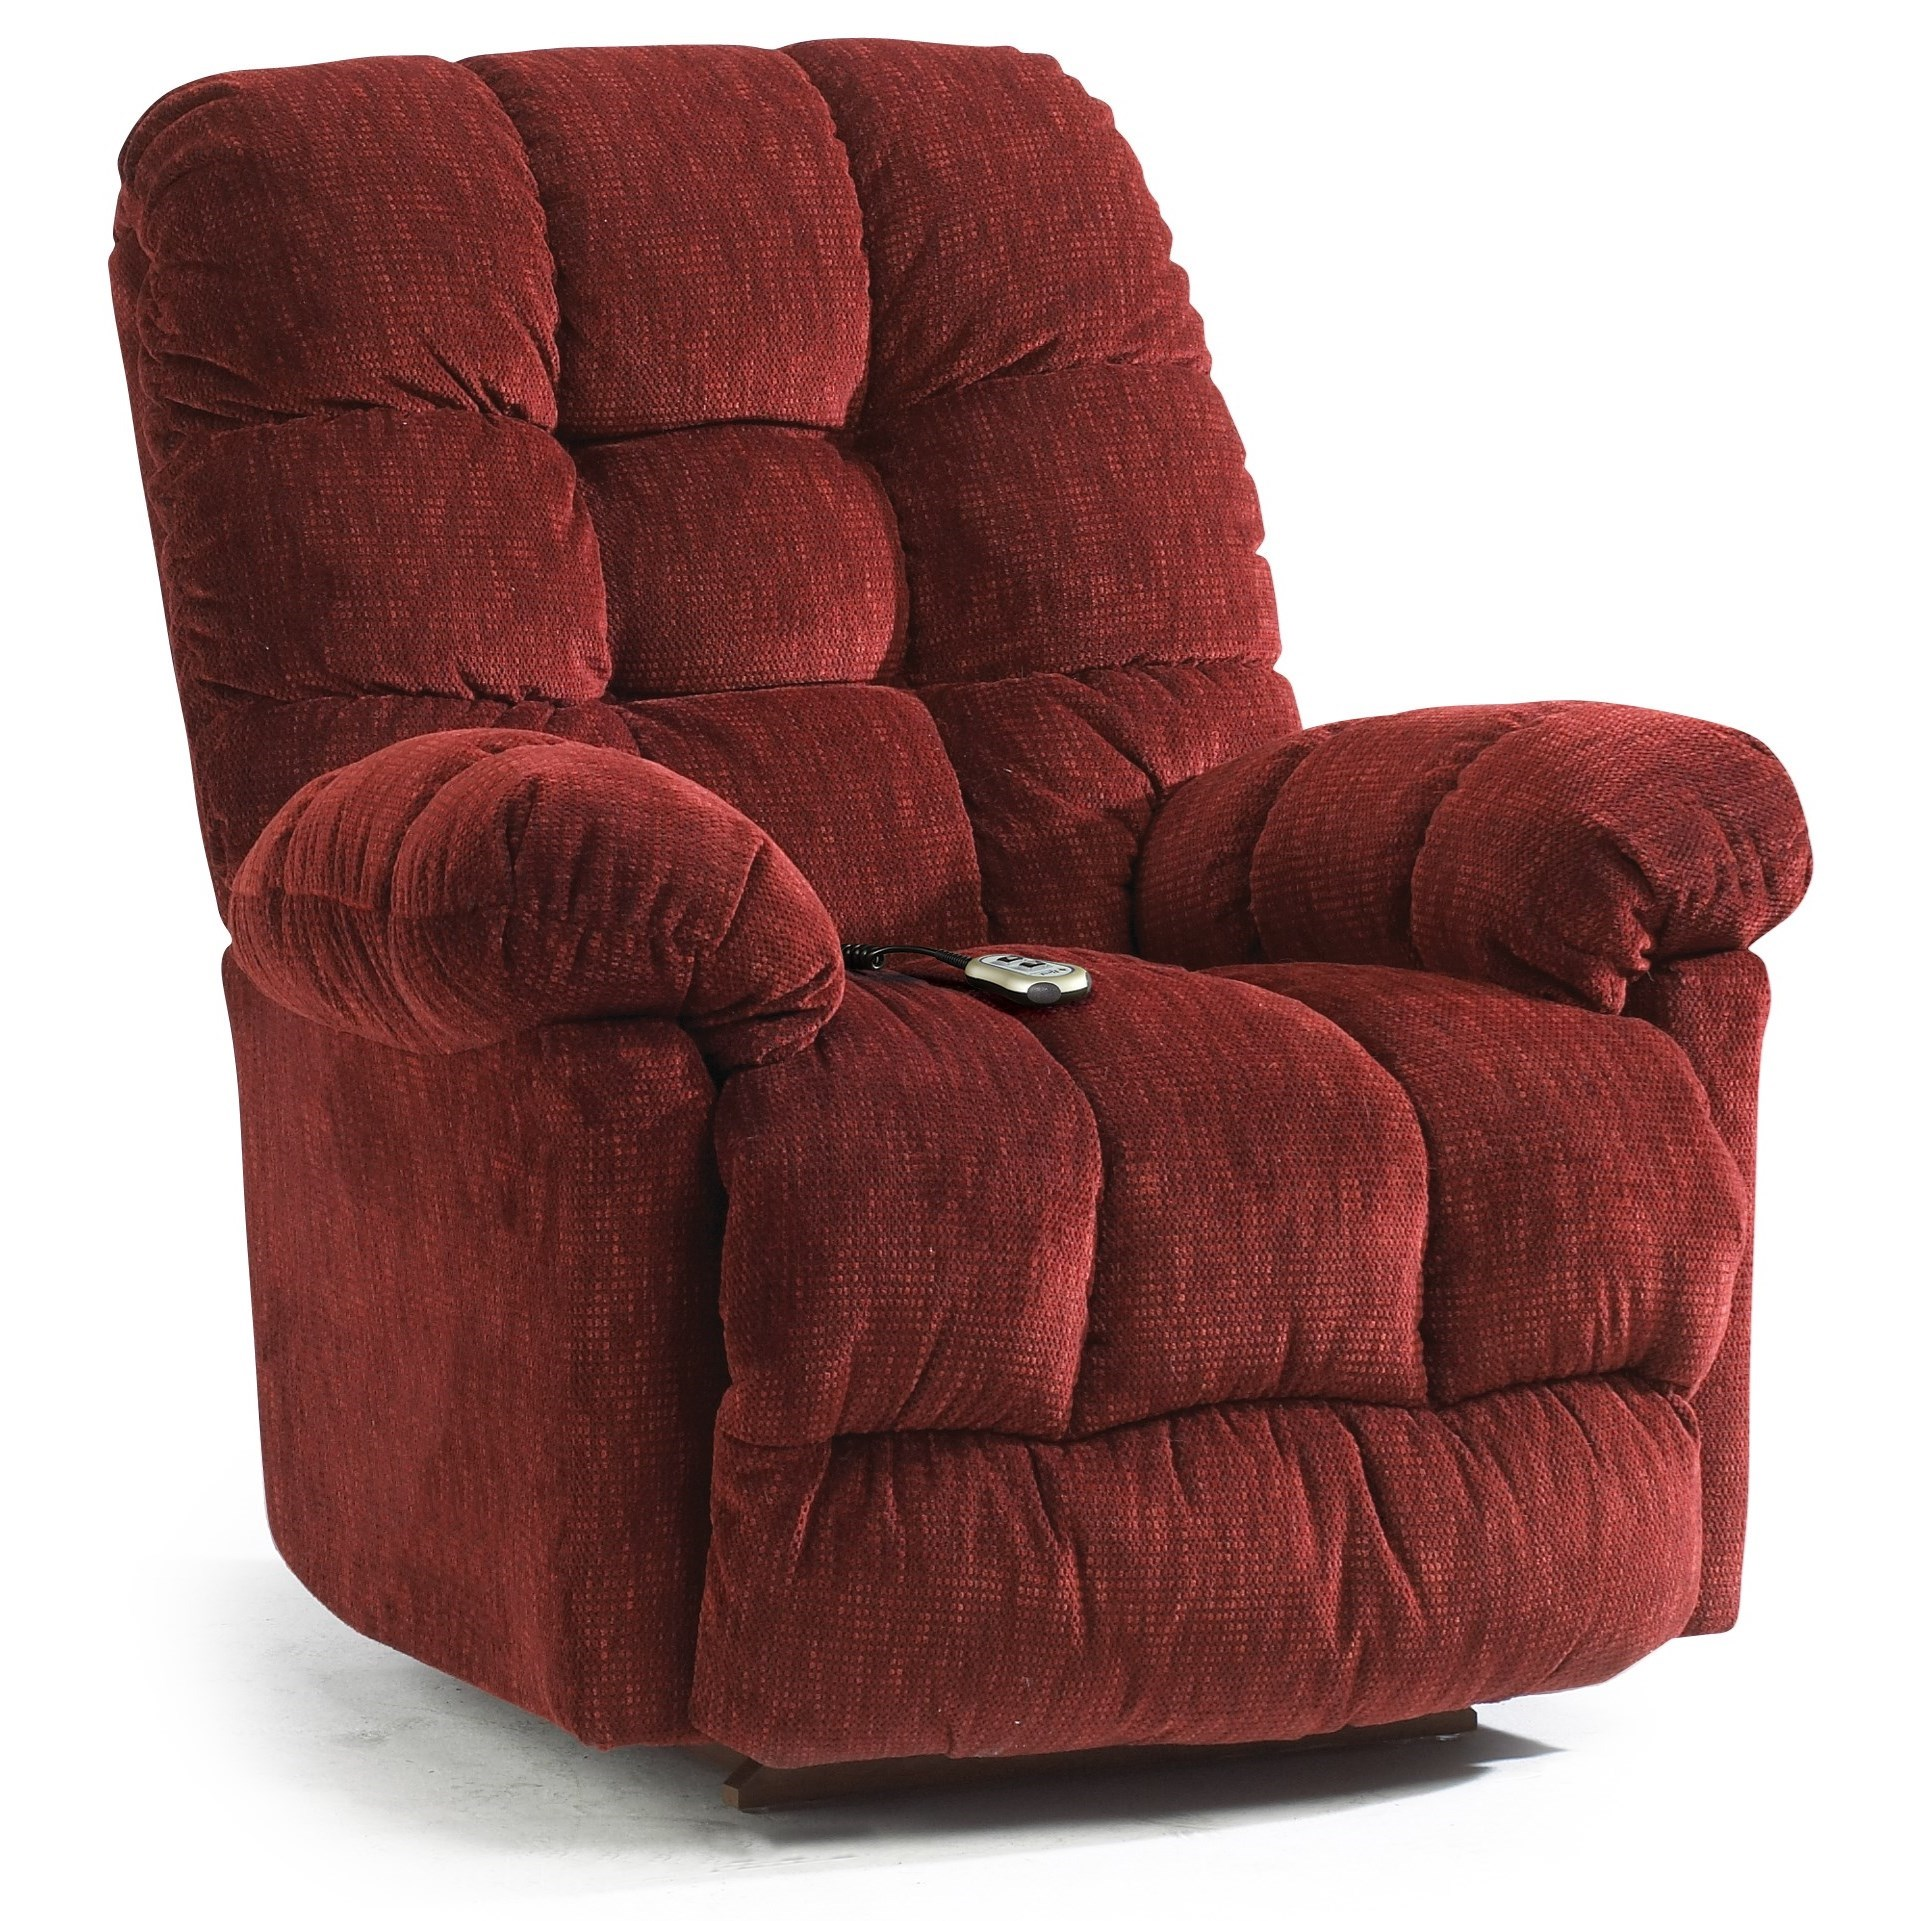 Best Home Furnishings Recliners - Medium Brosmer Power Rocker Recliner - Item Number: 9MP87-1